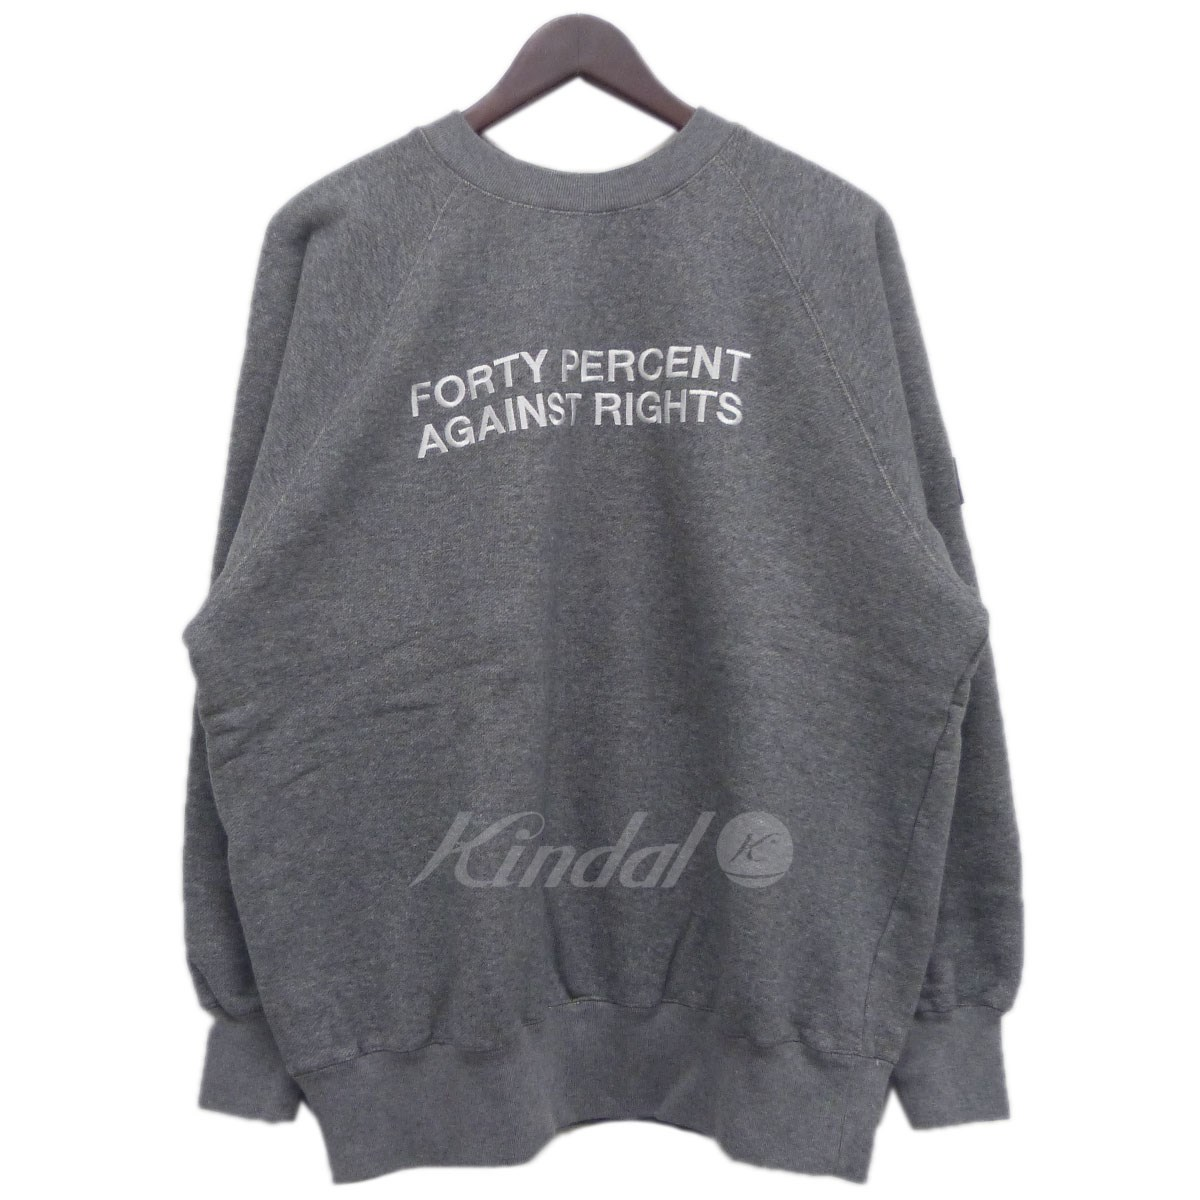 【中古】FORTY PERCENTS AGAINST RIGHTS (FPAR) 18AW 「SWEATSHIRT 03」 ロゴ刺繍スウェット 【送料無料】 【139364】 【KIND1550】